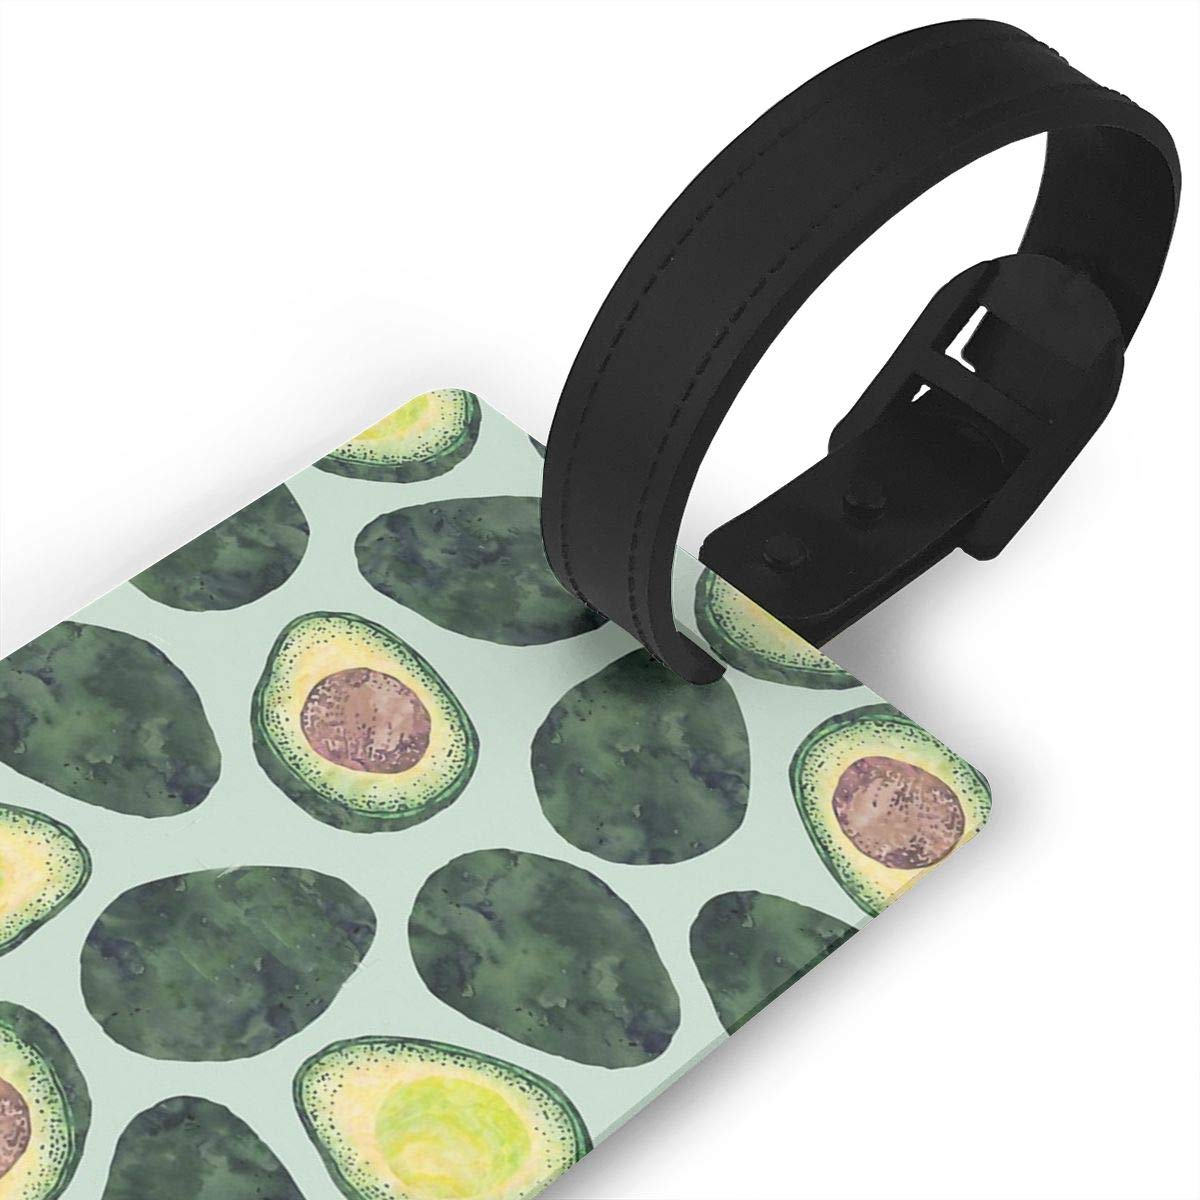 Avocado Addict Luggage Tags Suitcase Labels Bag Travel Accessories Set of 2